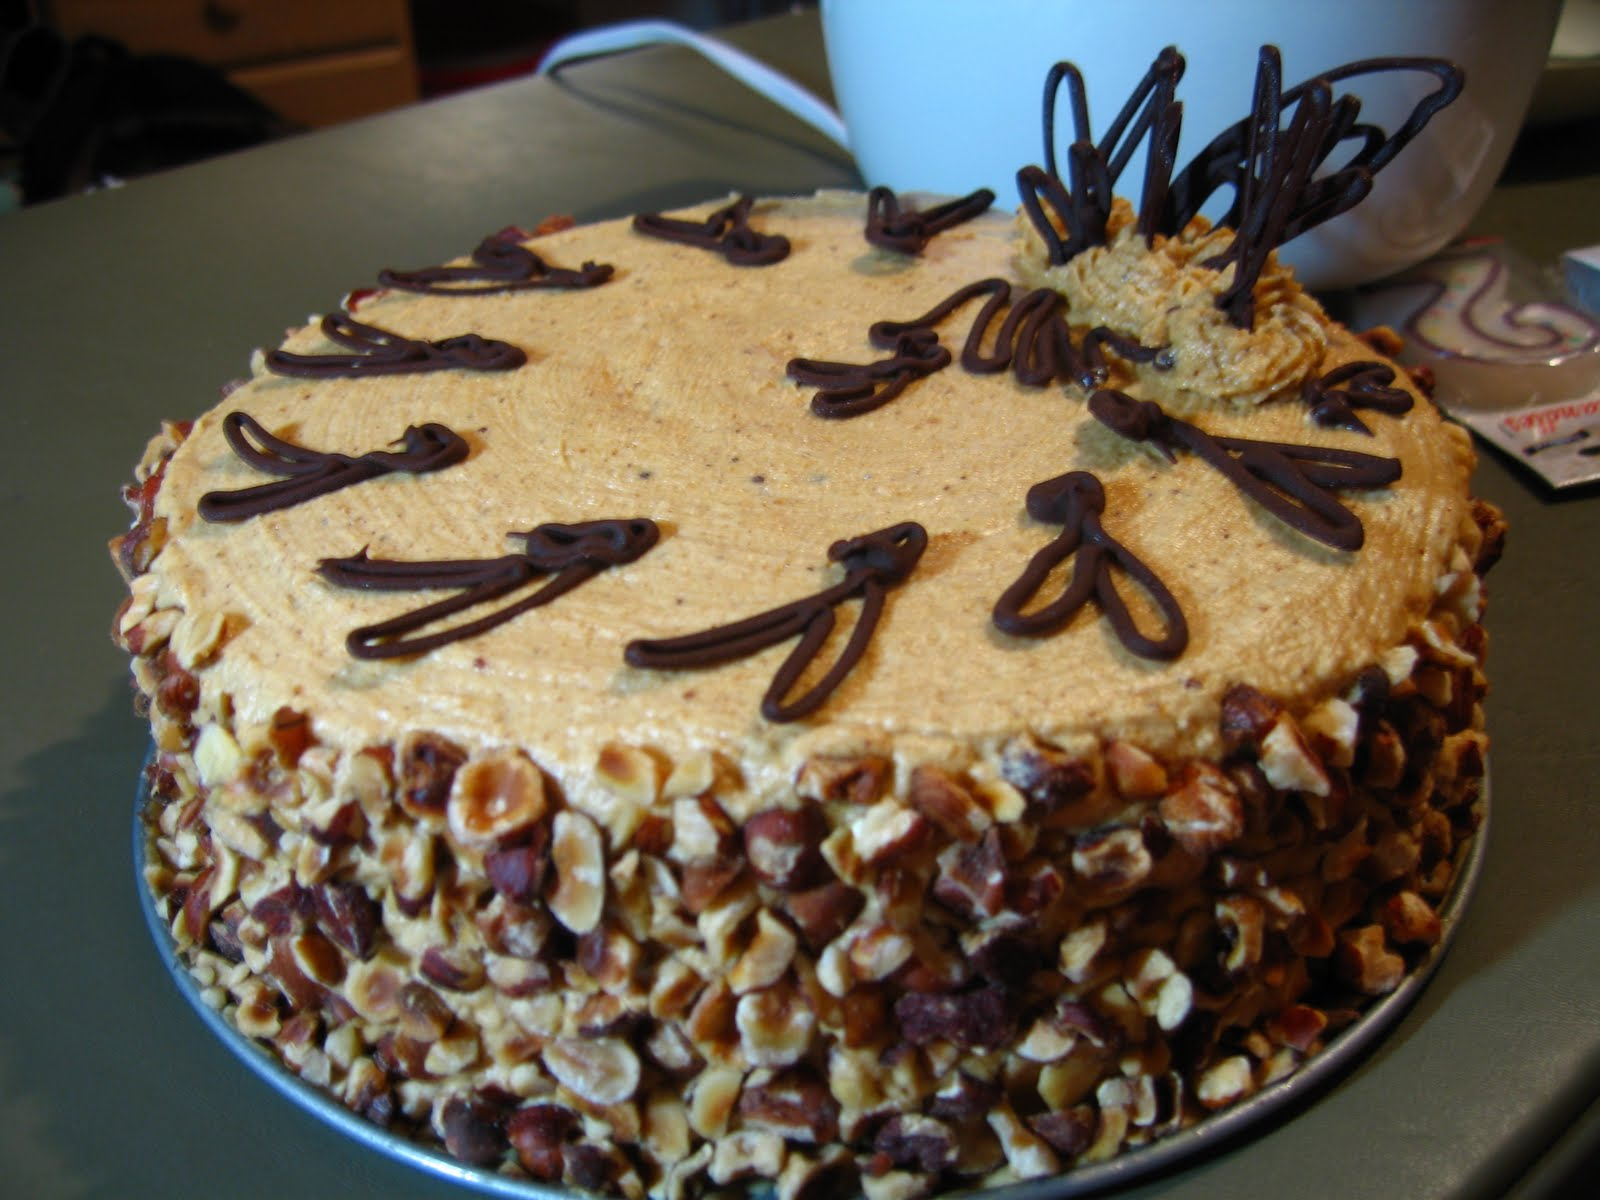 Chocolate Hazelnut Torte with Hazelnut Praline Buttercream